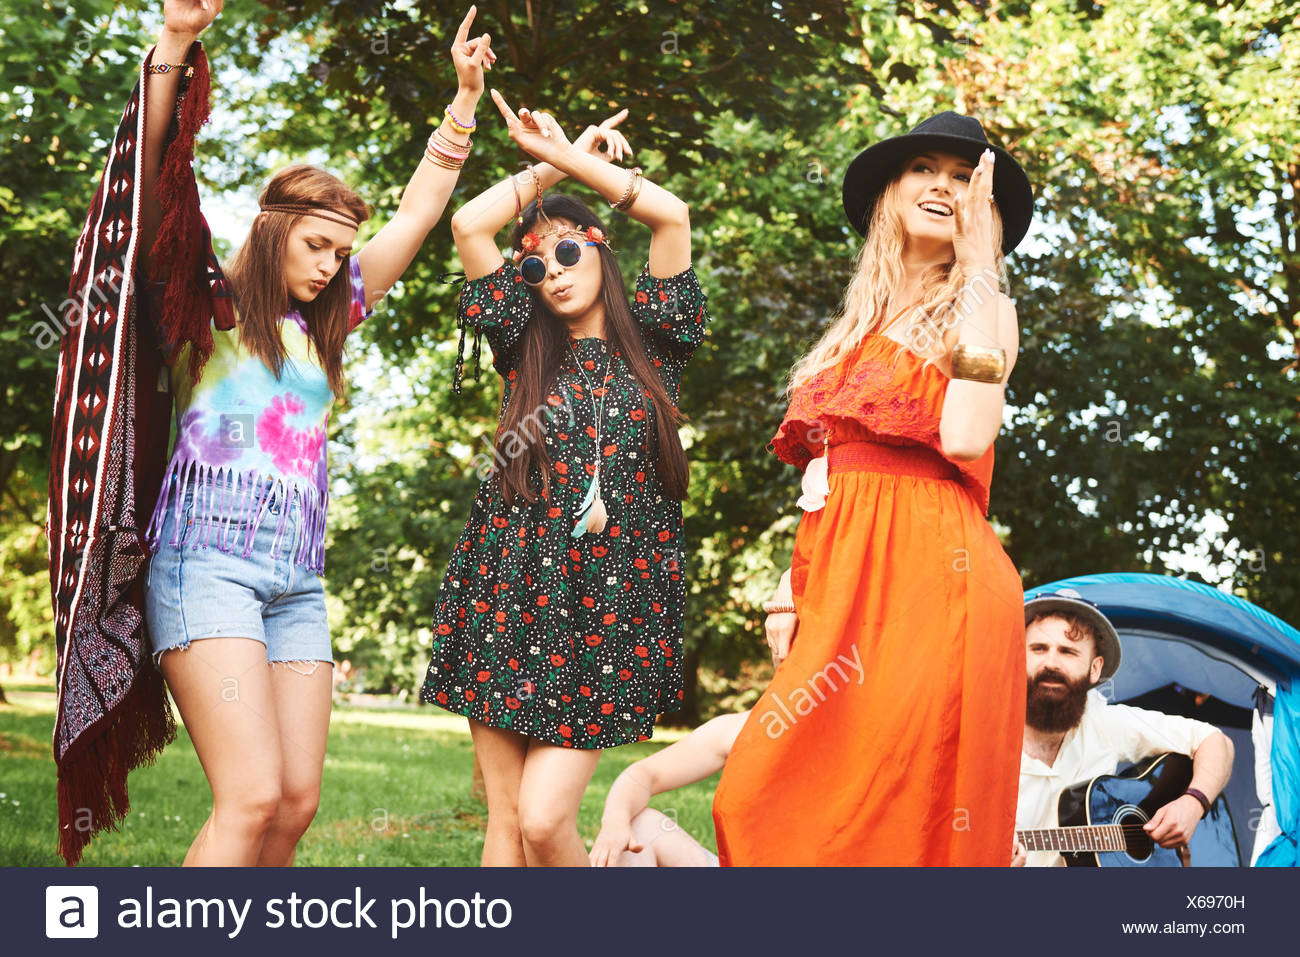 Three young boho women dancing together at festival - Stock Image